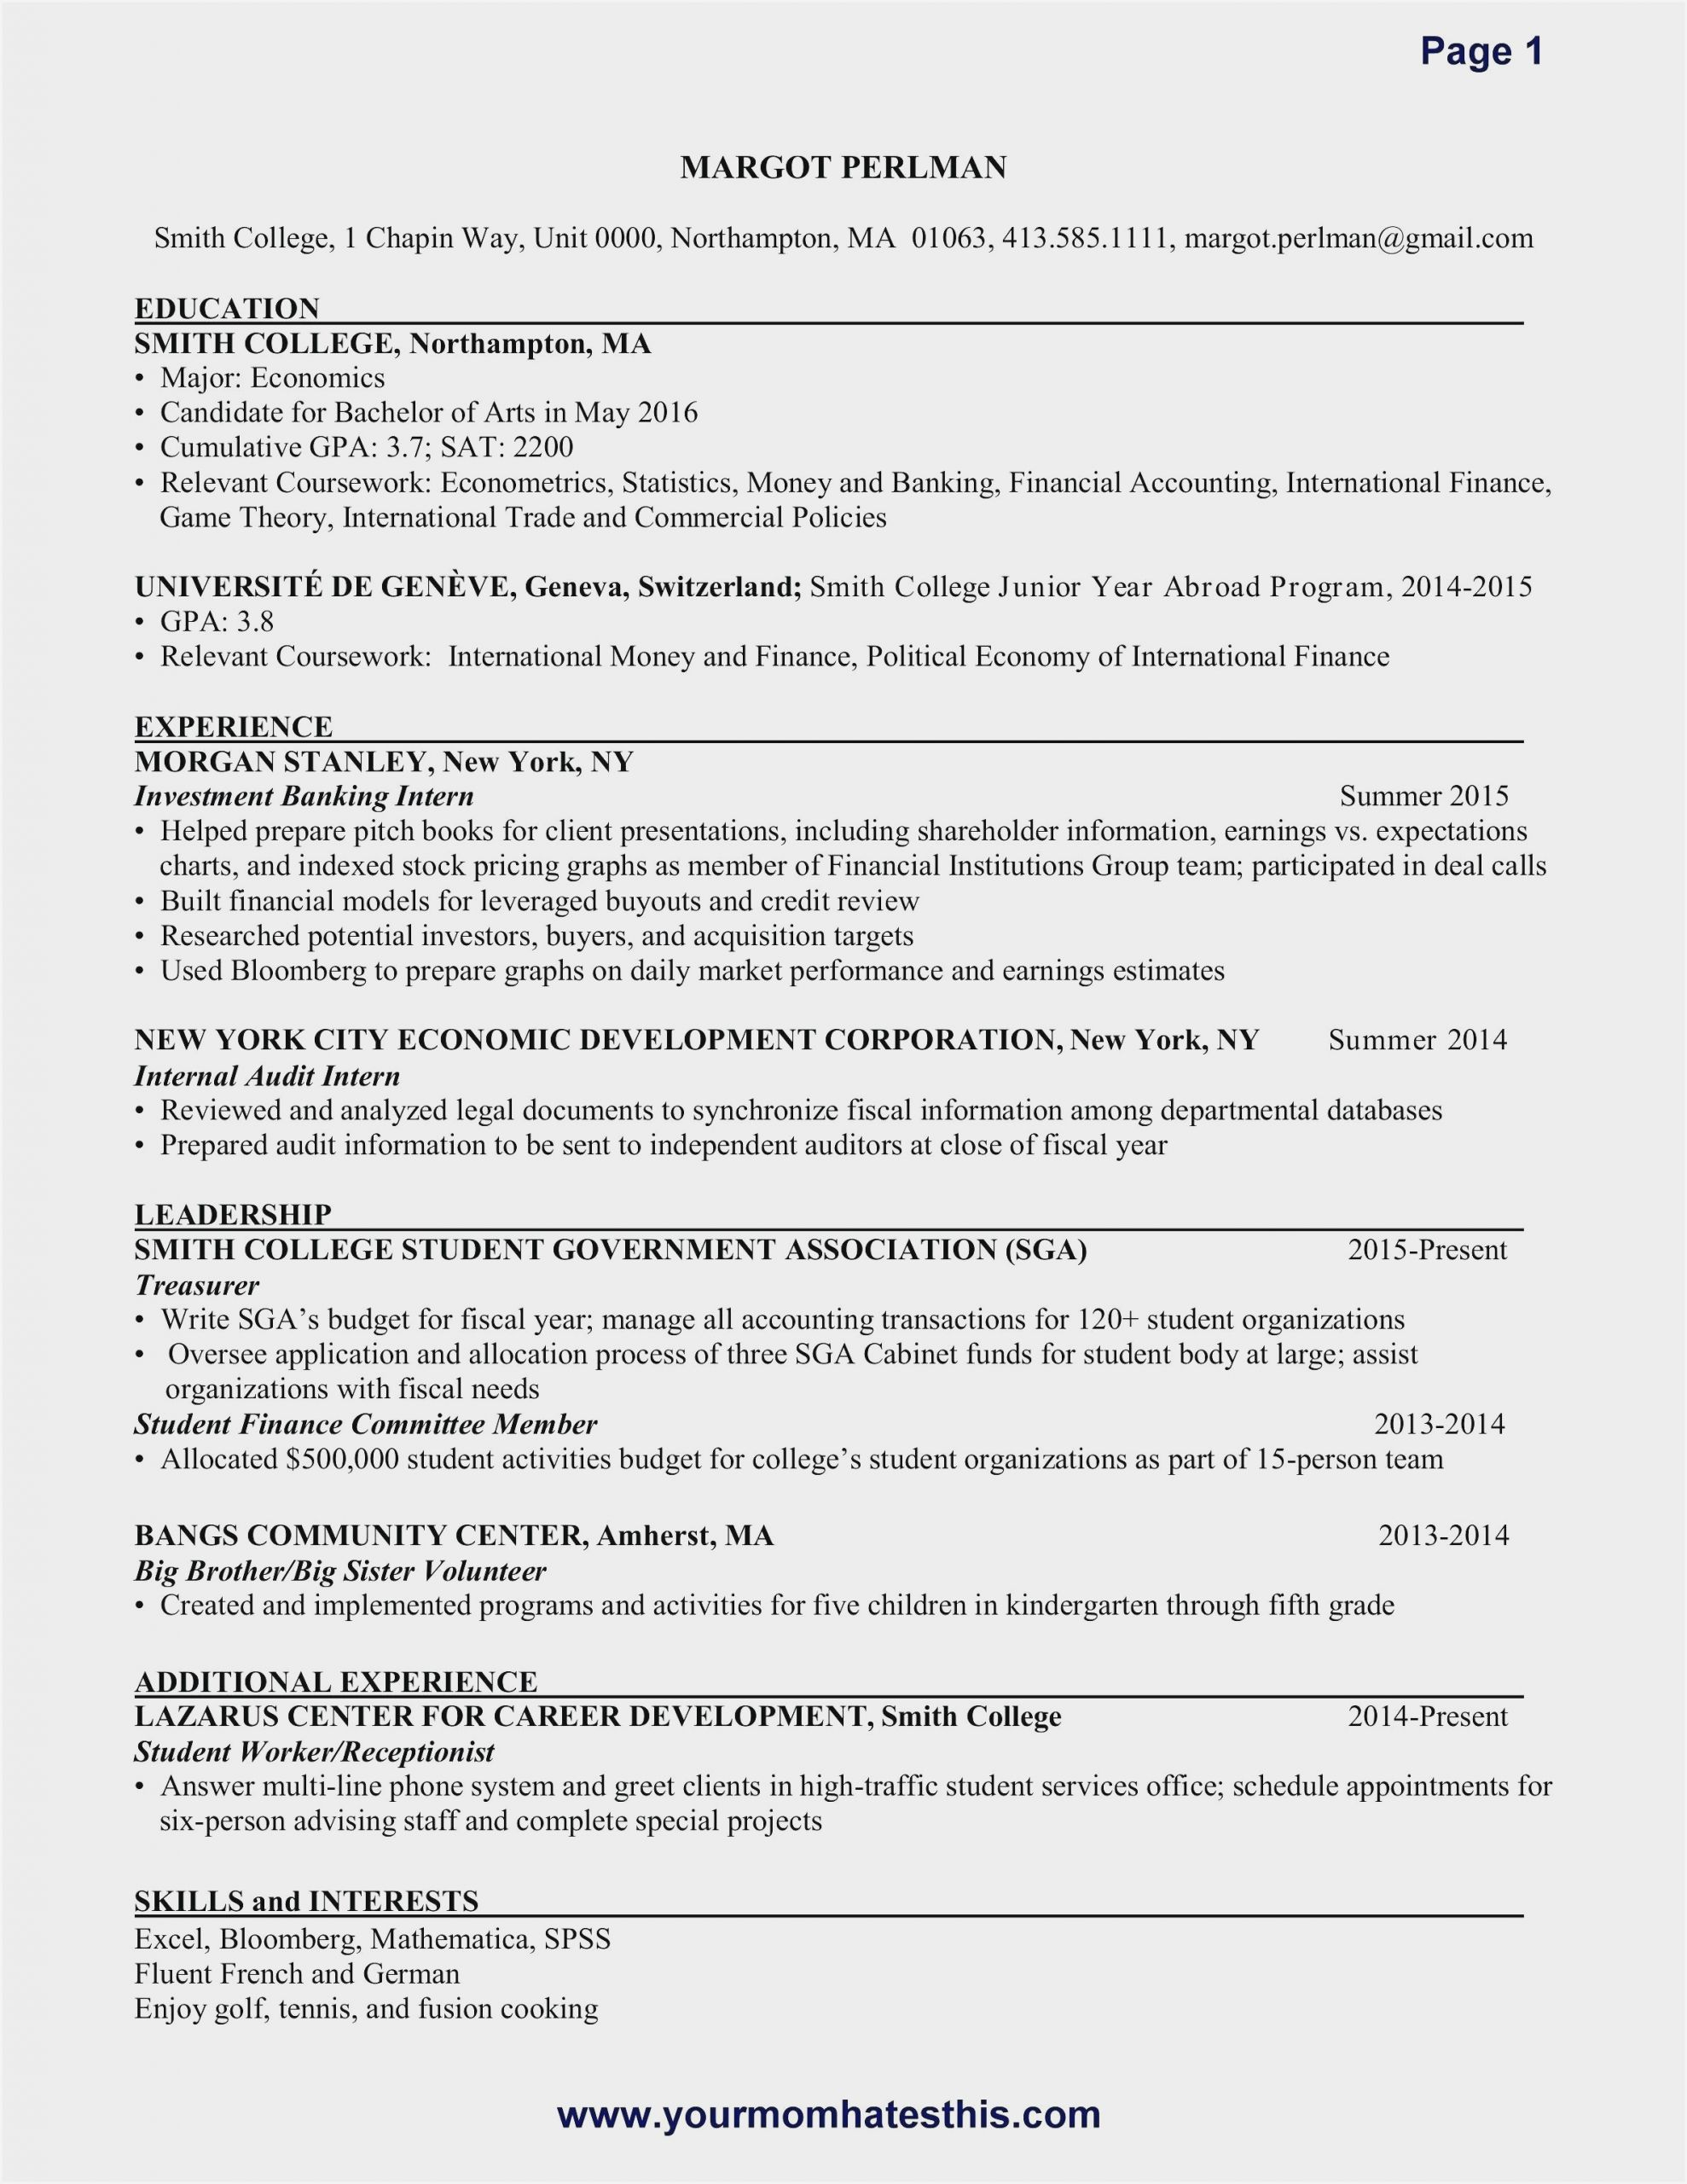 pediatric dental assistant resume samples sample experience scaled best writing service Resume Experience Dental Assistant Resume